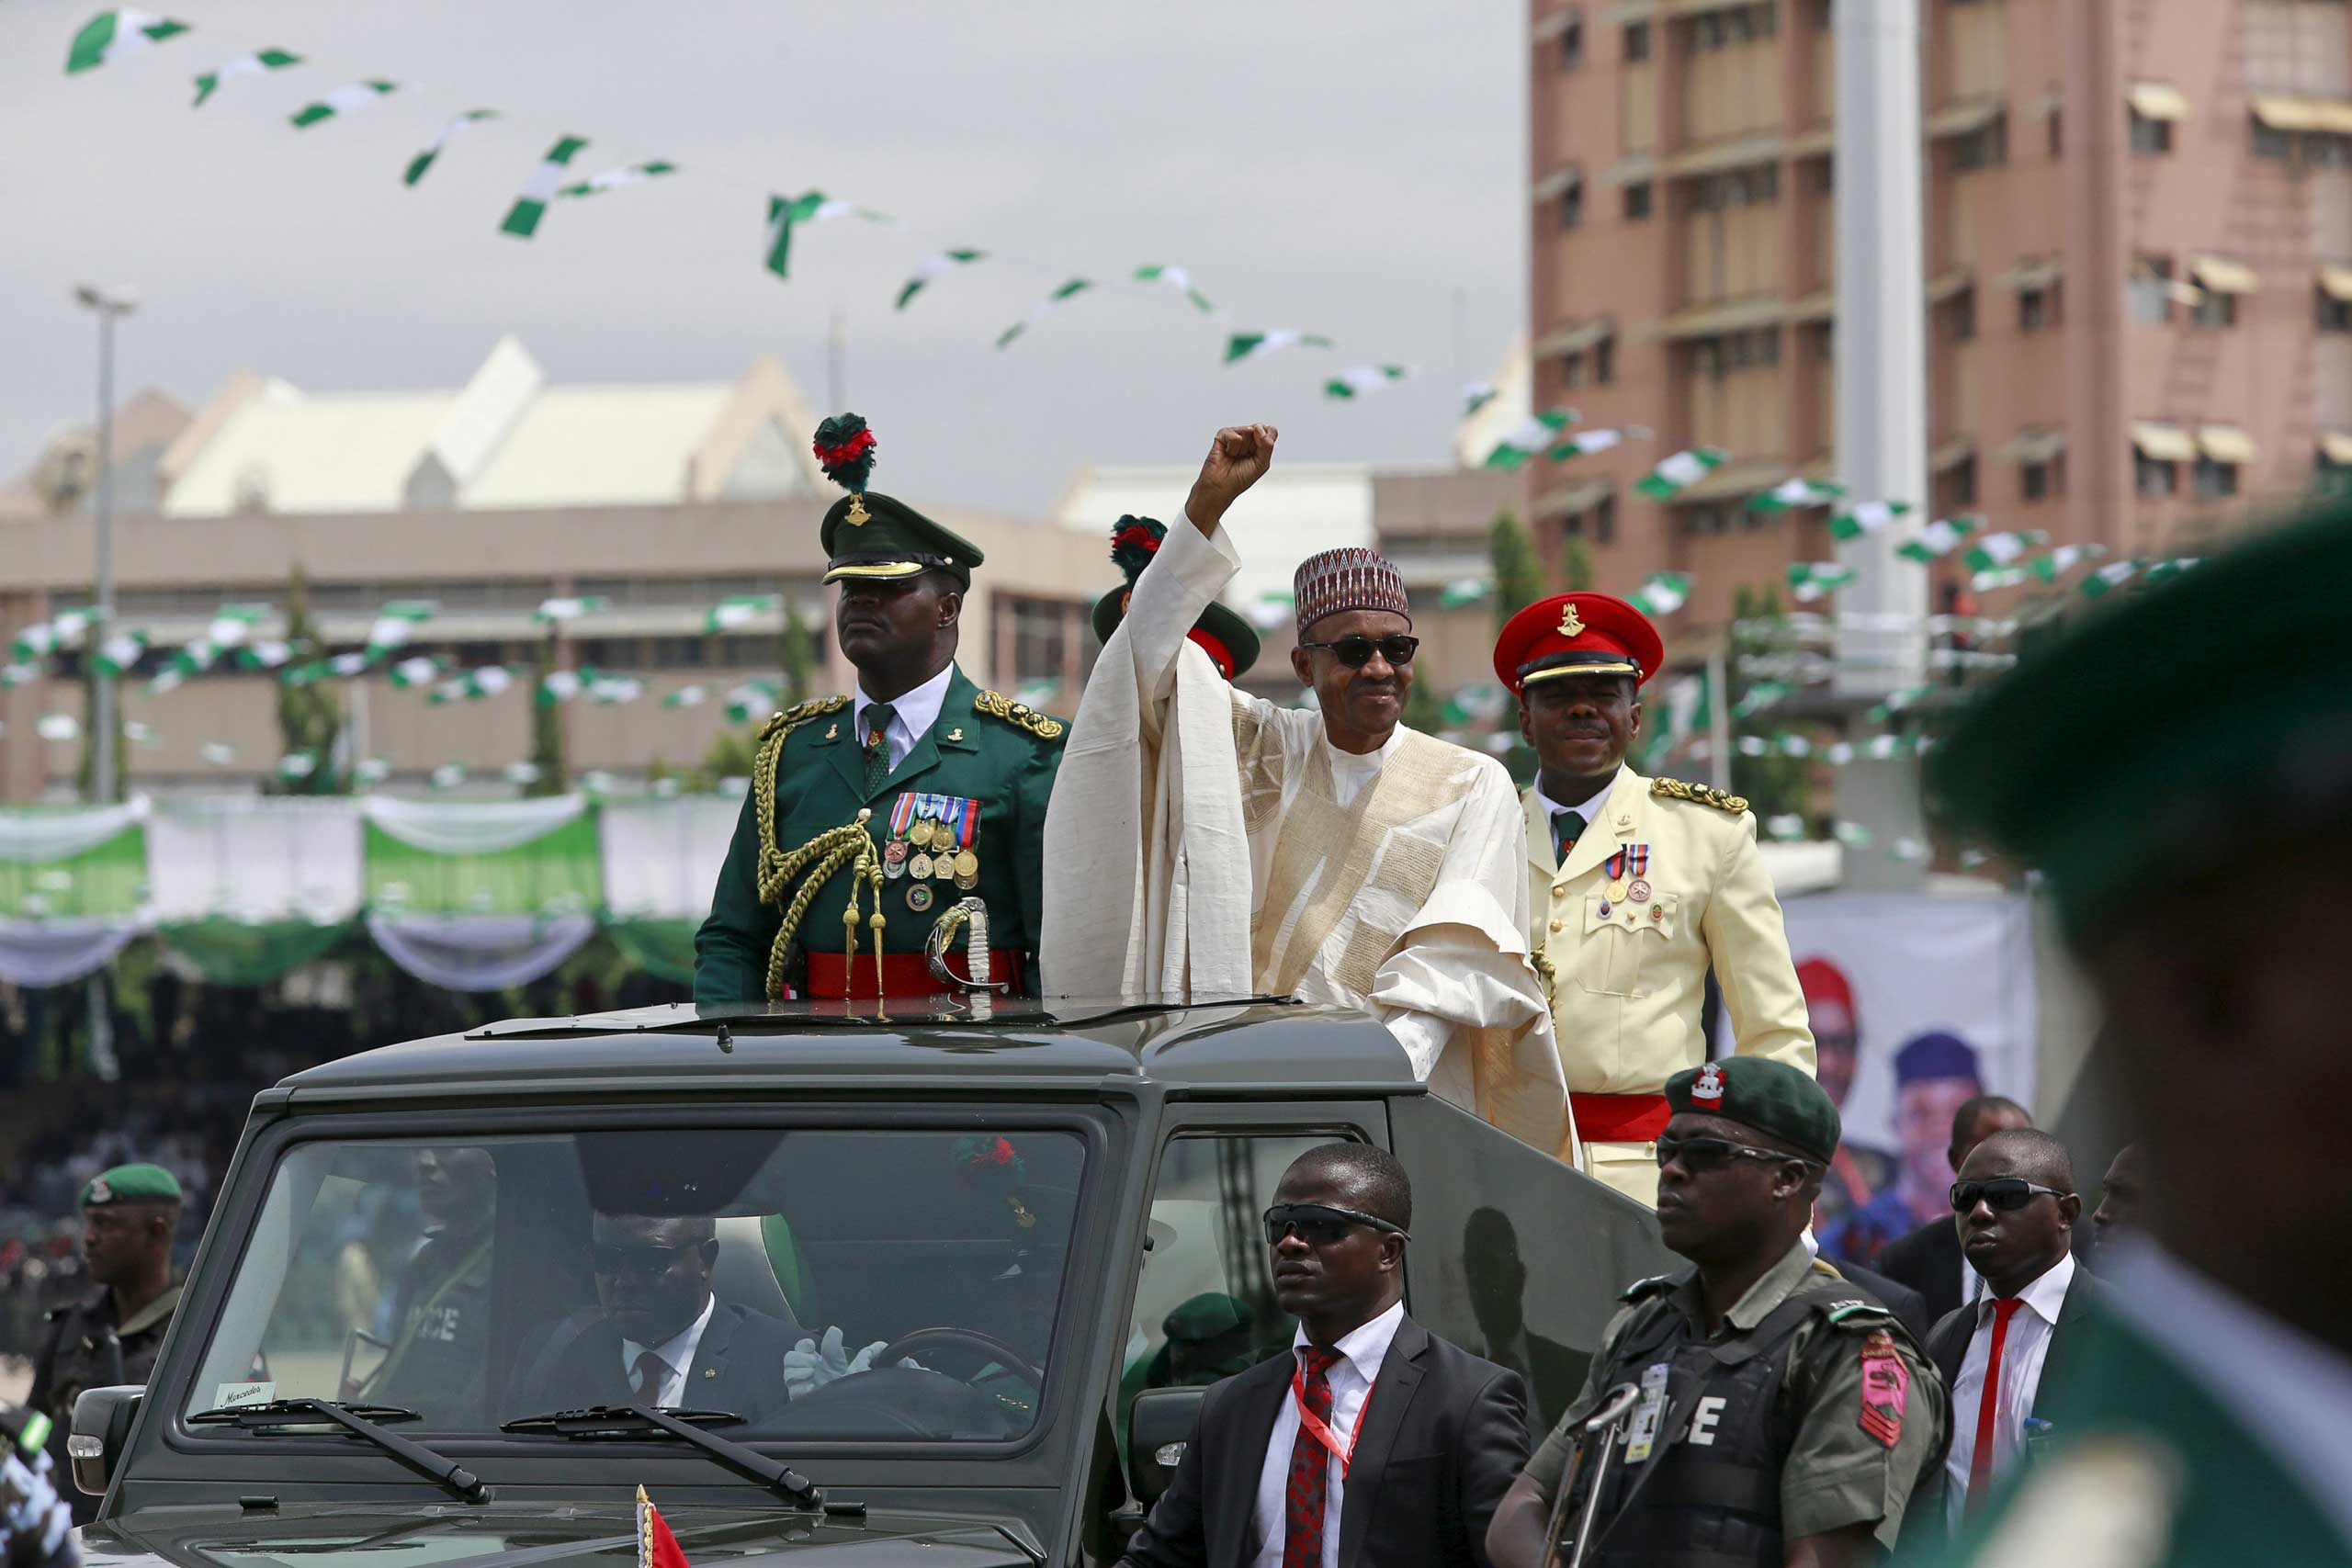 Nigeria's new President Muhammadu Buhari rides in a motorcade while inspecting the guard of honour before his inauguration at Eagle Square in Abuja, Nigeria on May 29, 2015.